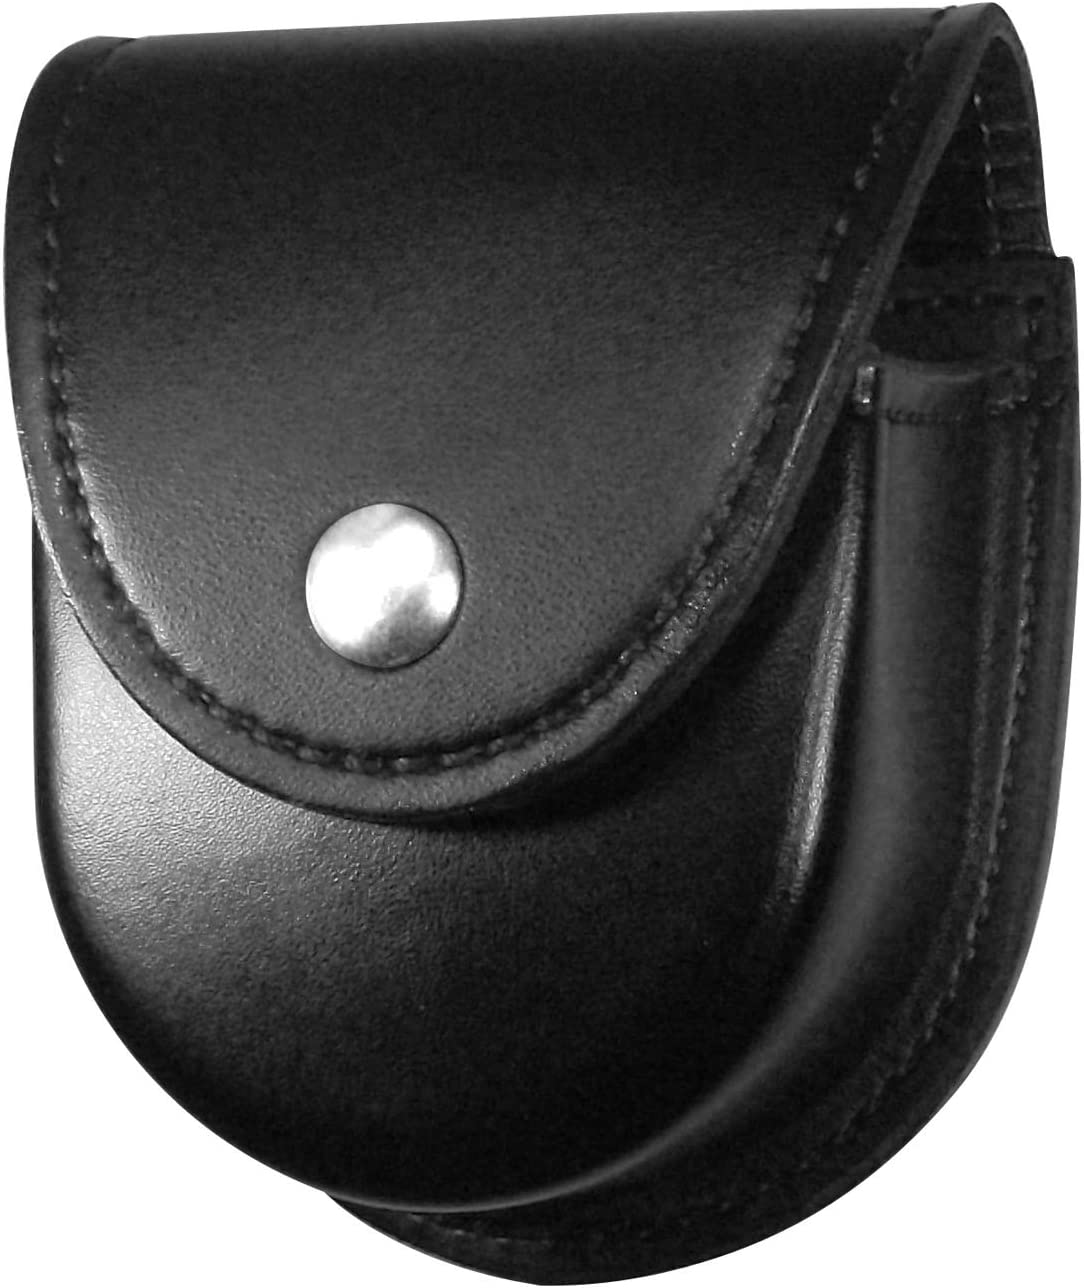 Gould & Goodrich H596Cl Double Handcuff Case Place On Belt Up to 2-1/4-Inch (Hi-Gloss)